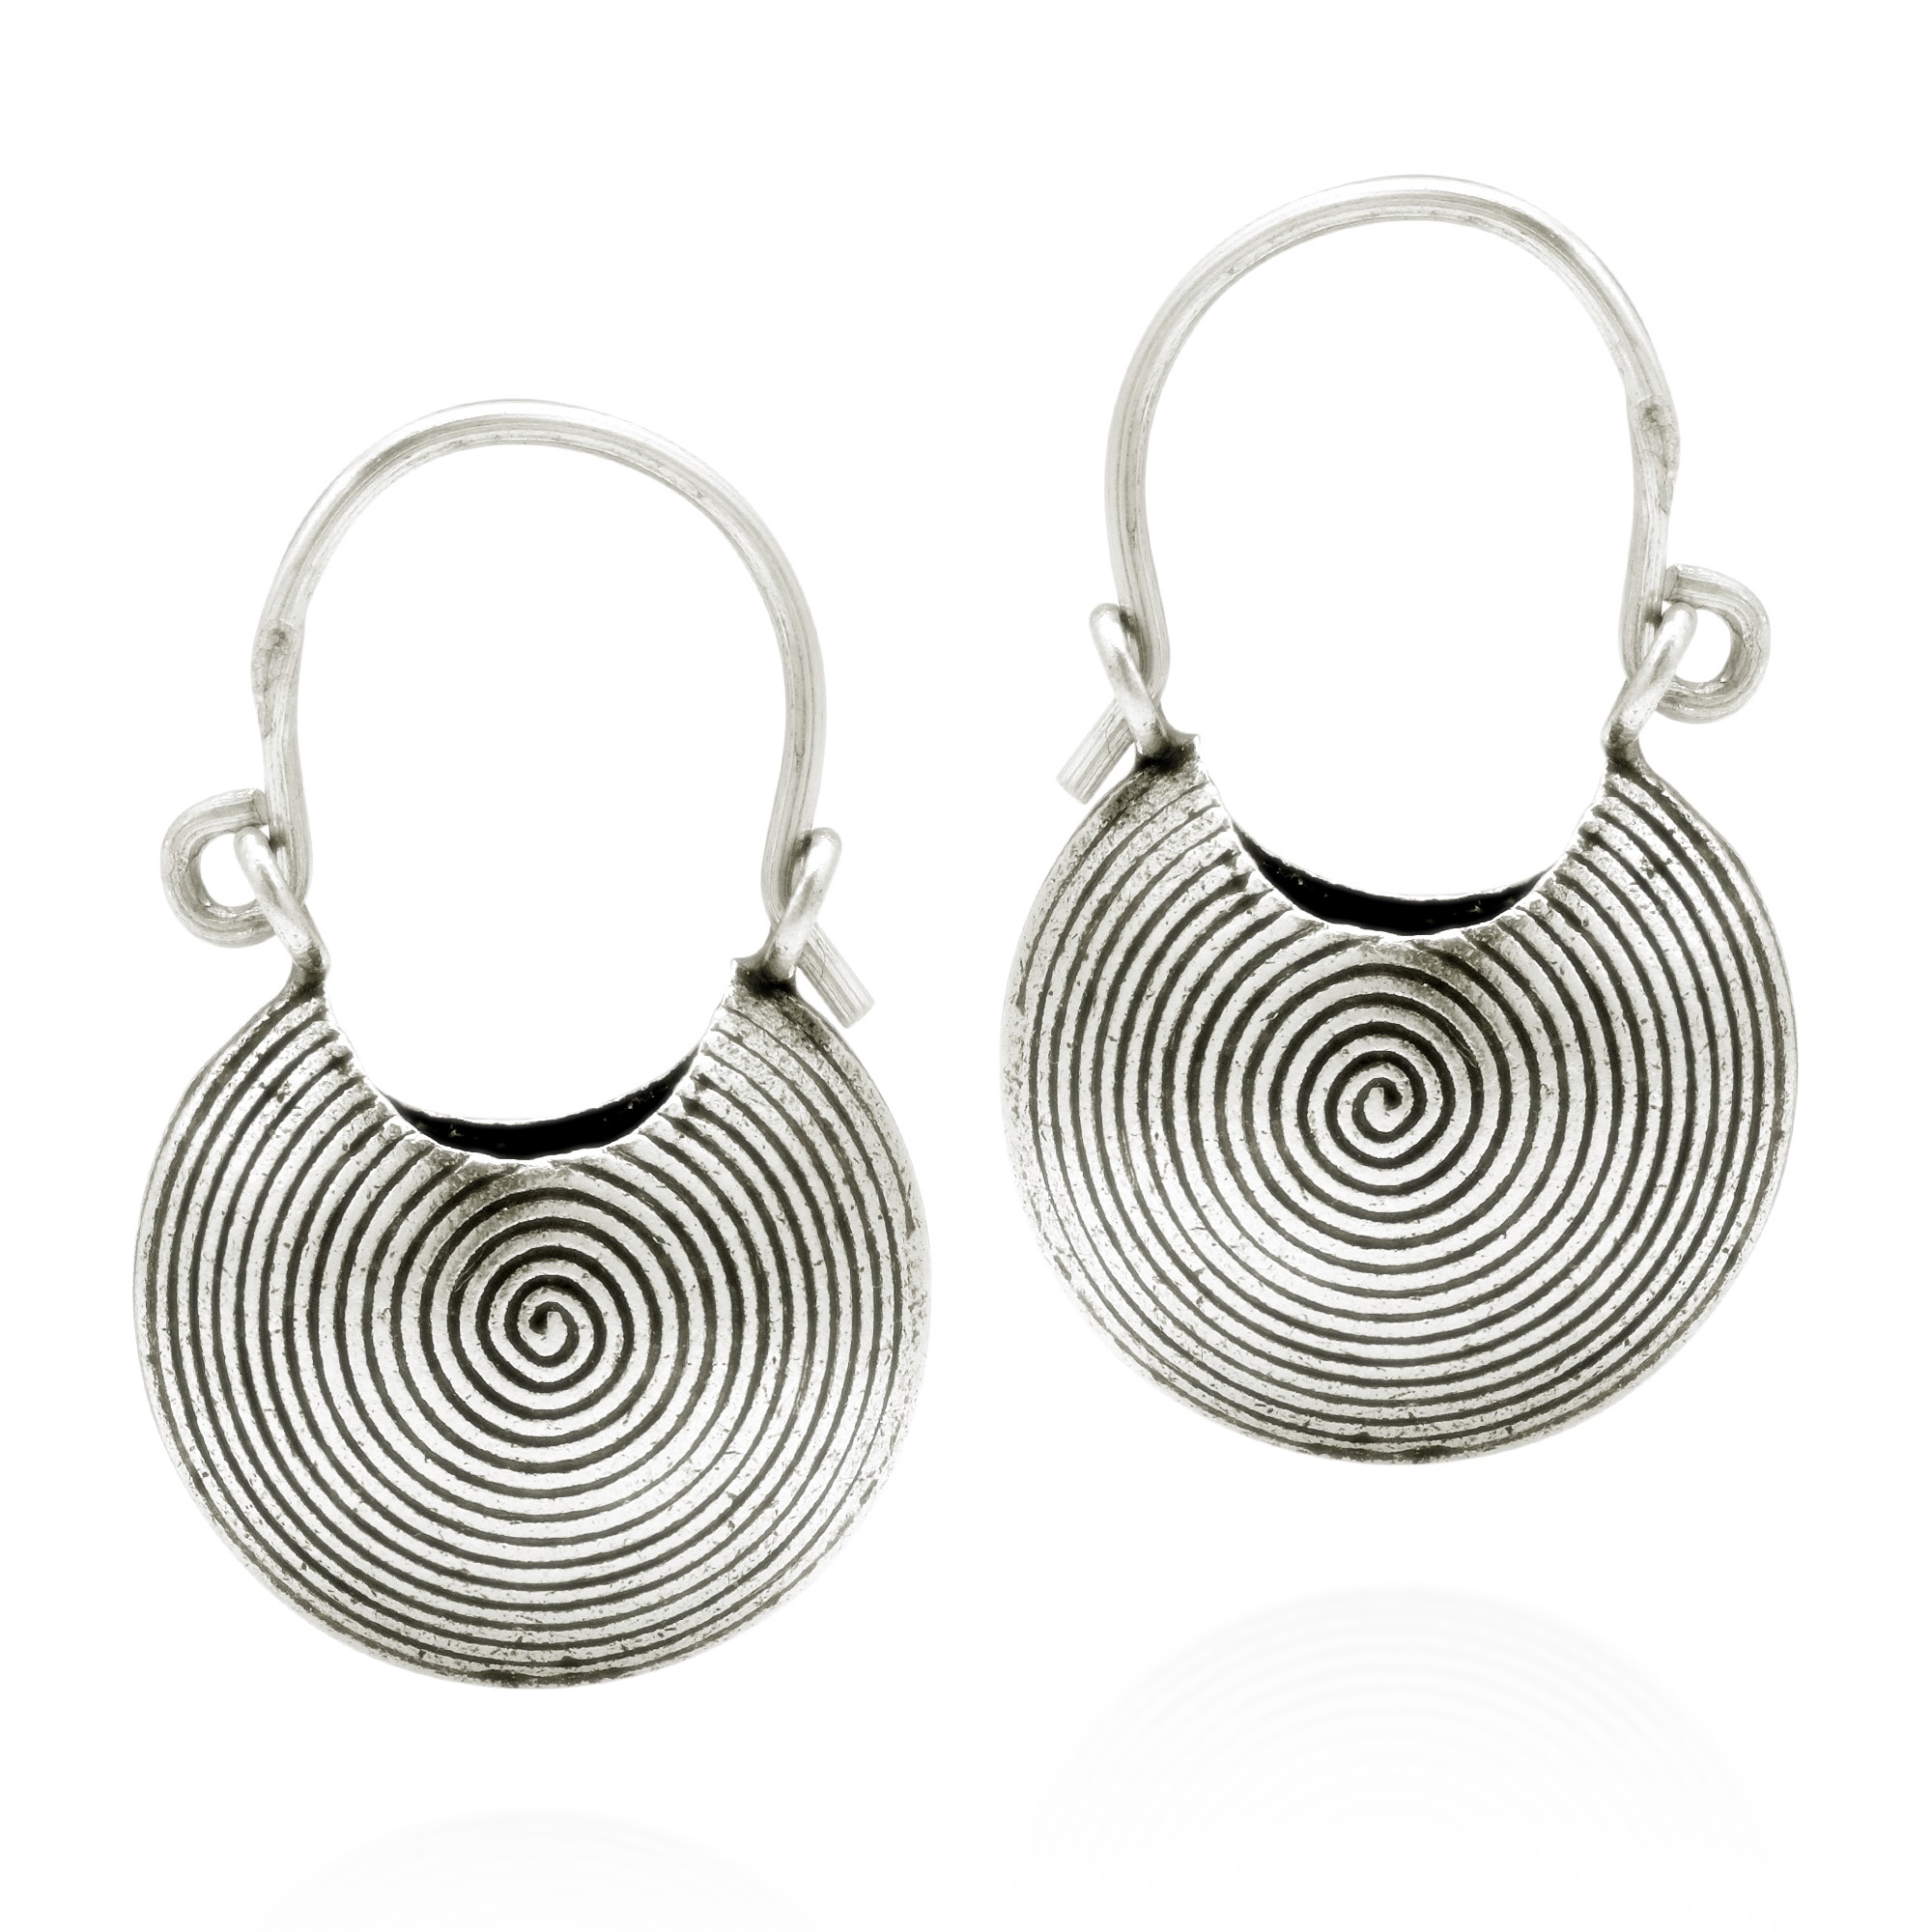 Spirals Filled The Baskets With Hypnotic Elegance These Fashionable Earrings Were Crafted By Hand Thai Hill Tribe Pure Silver